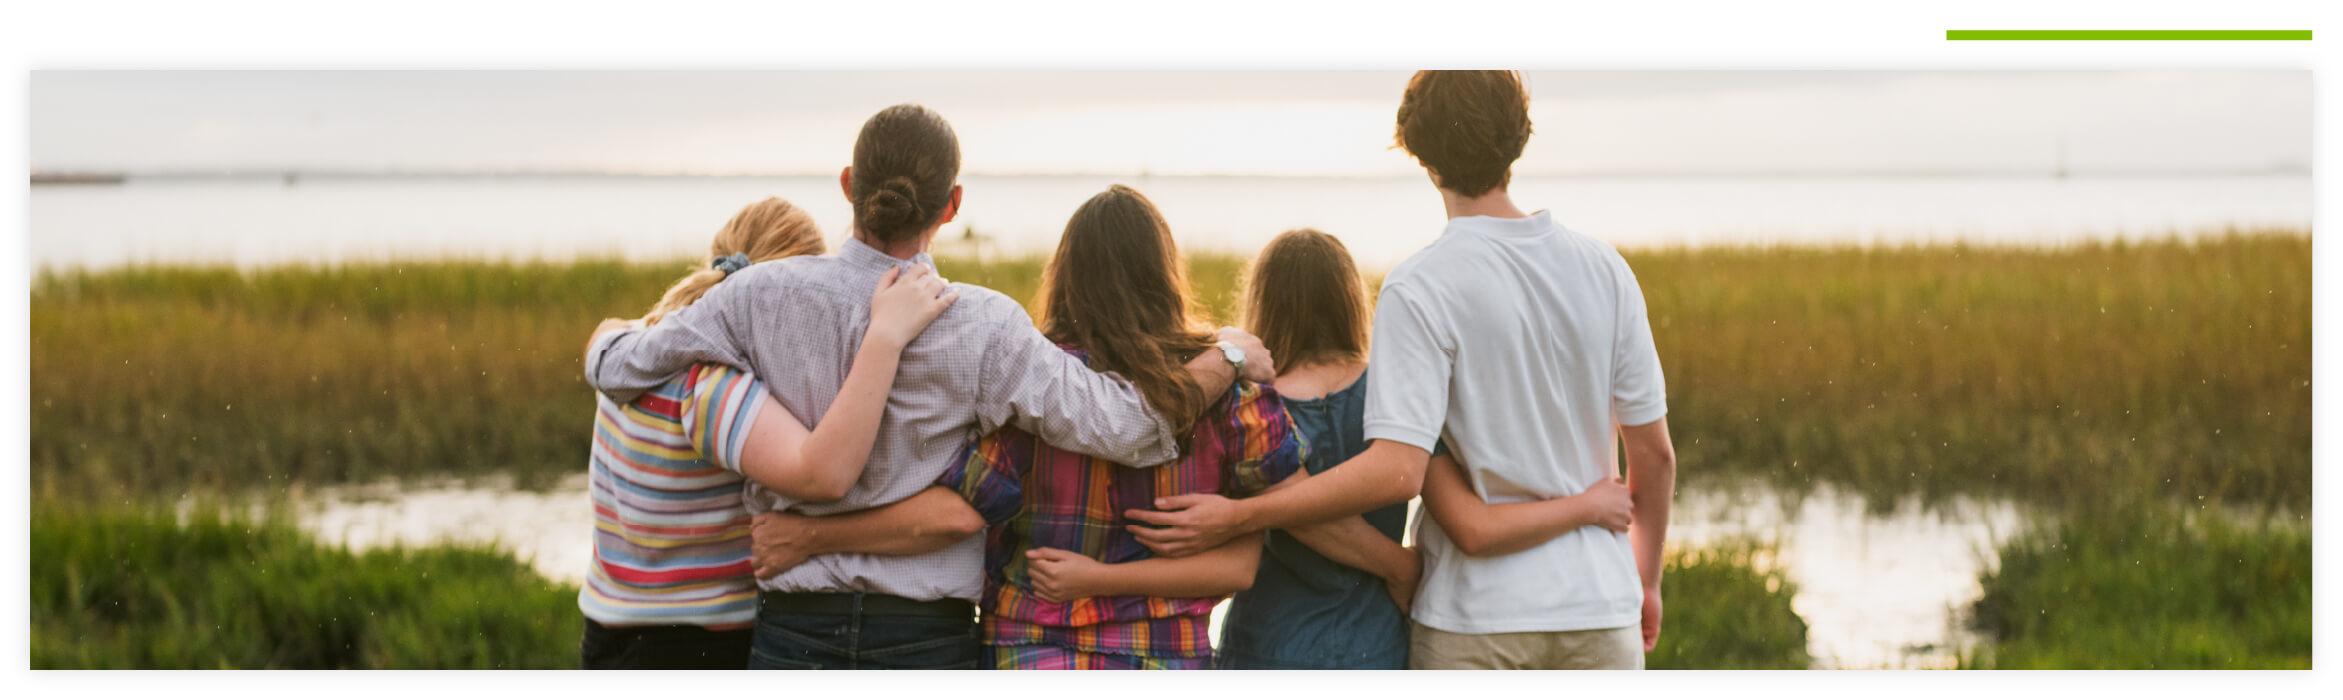 Group of men and women with their arms around each other's backs, facing the sunset outside at a lake.